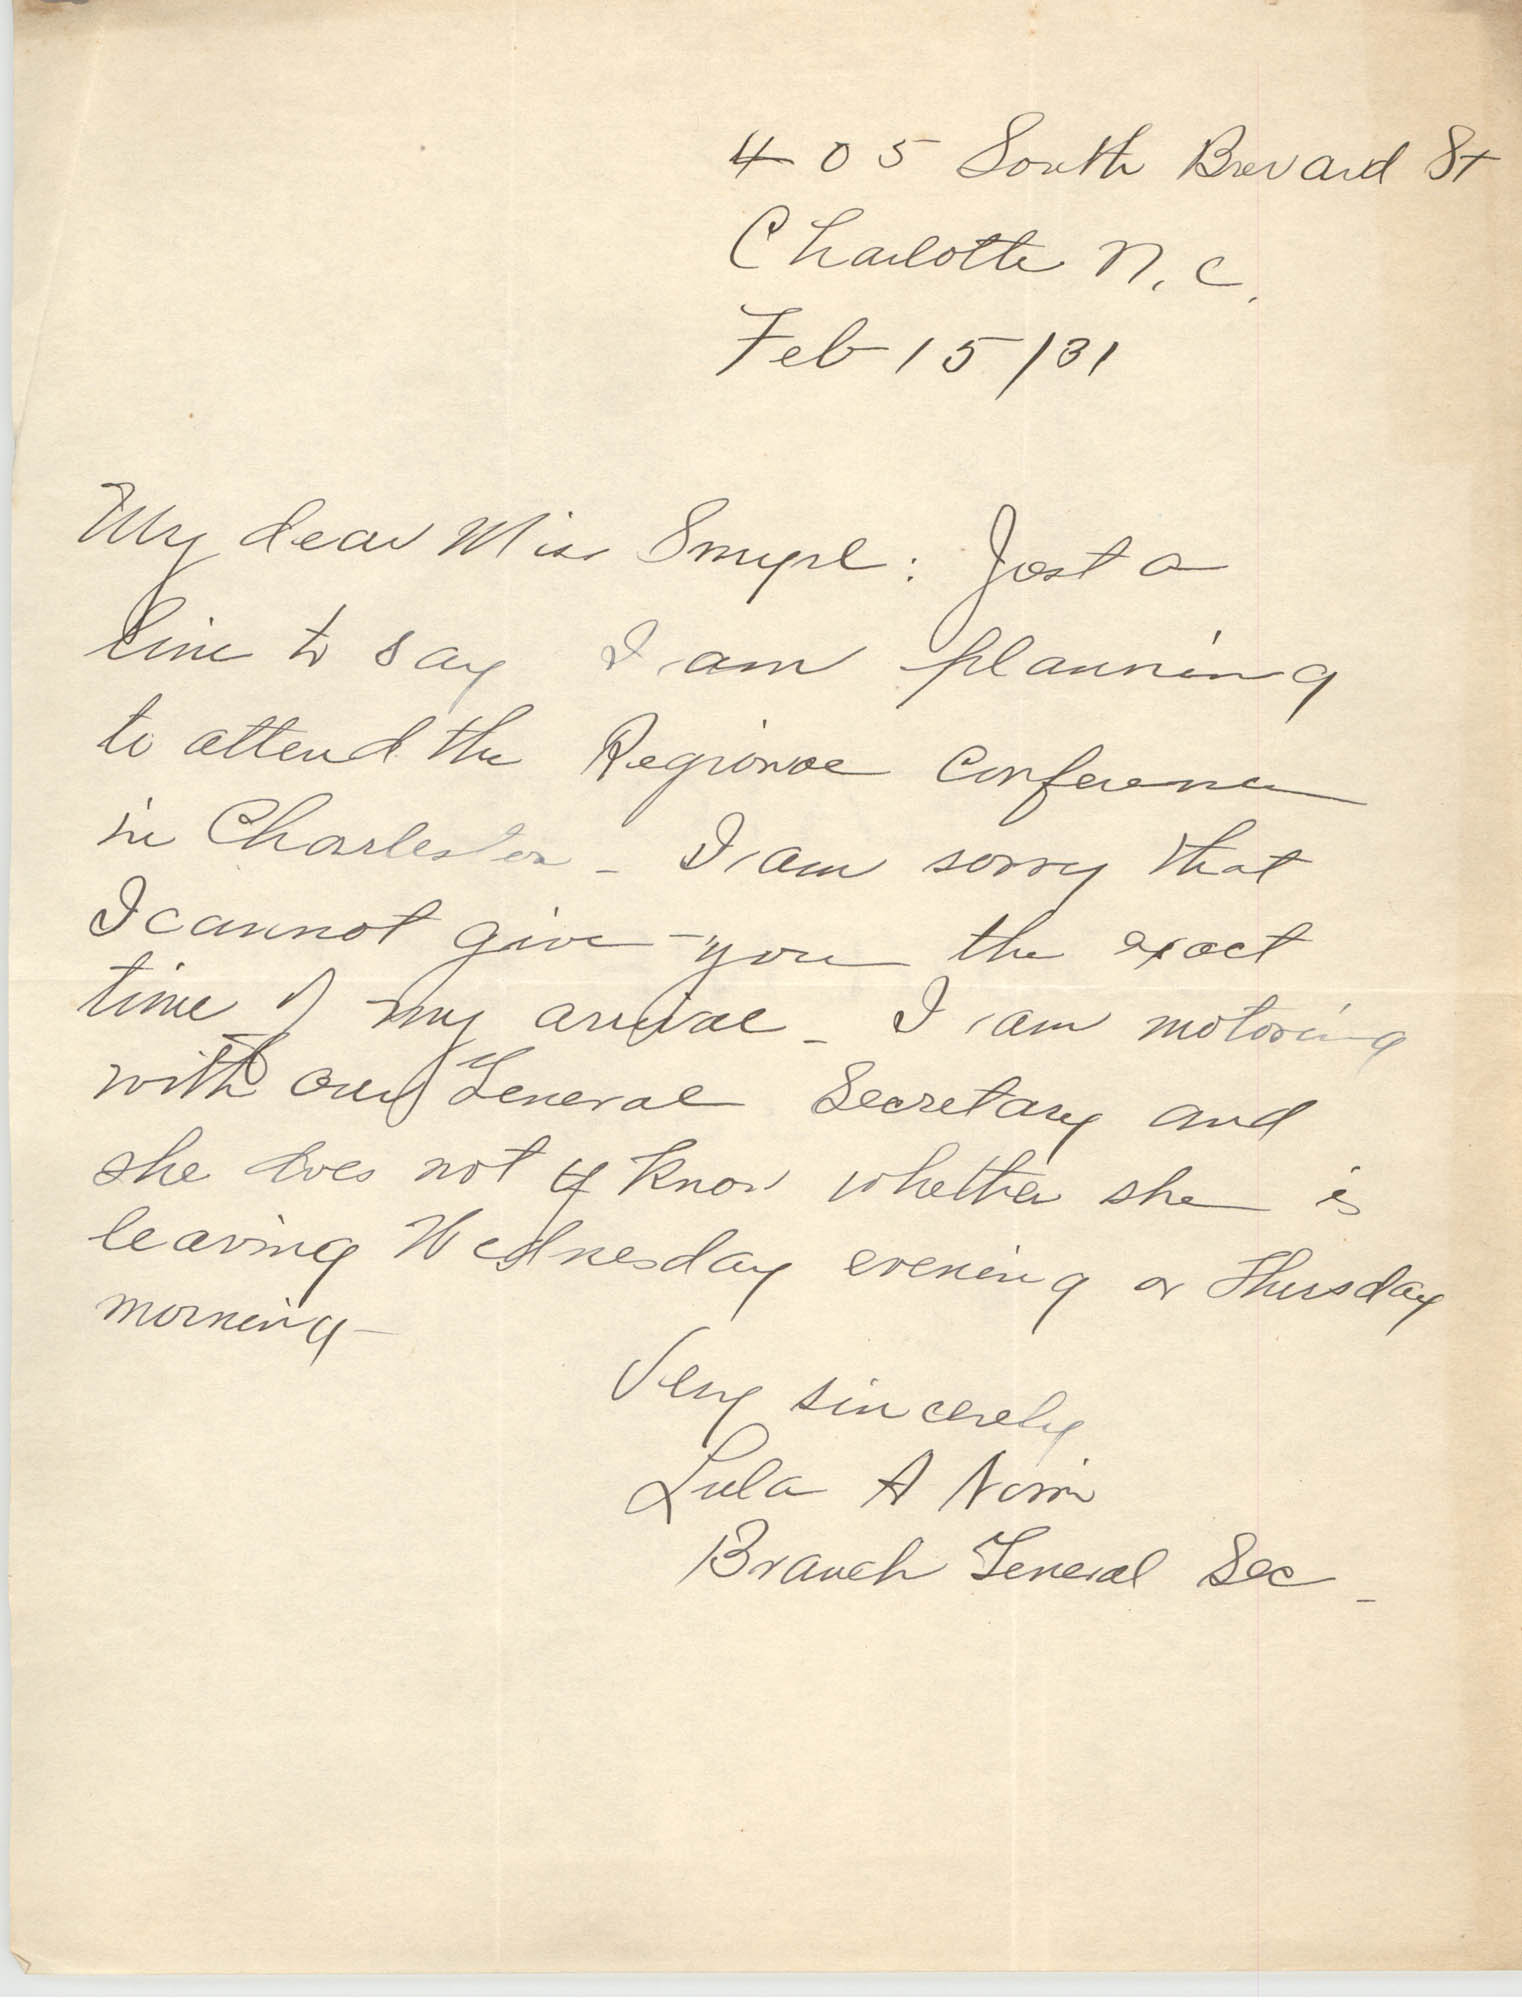 Letter from Branch General Secretary for Y.W.C.A. to Ella L. Smyrl, February 15, 1931